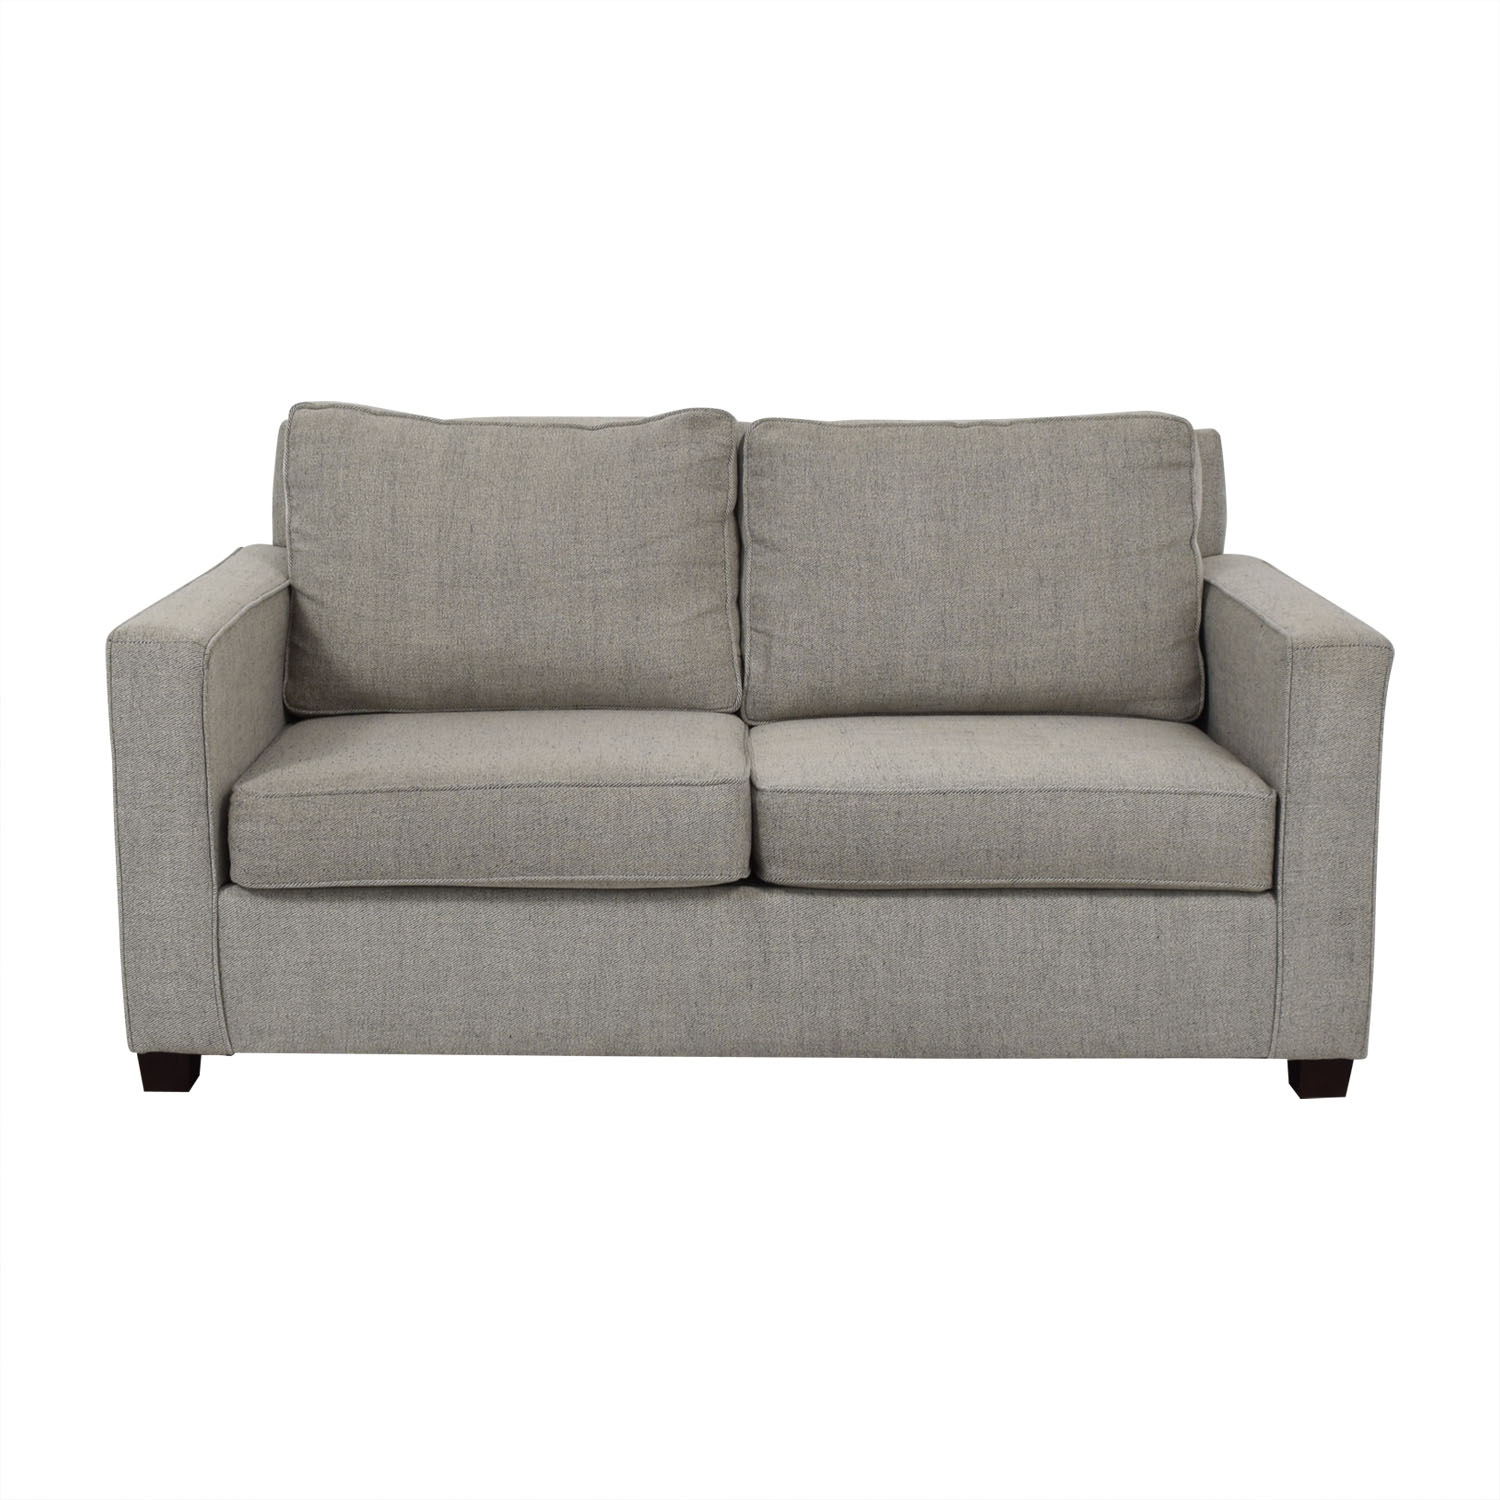 West Elm West Elm Henry Loveseat second hand